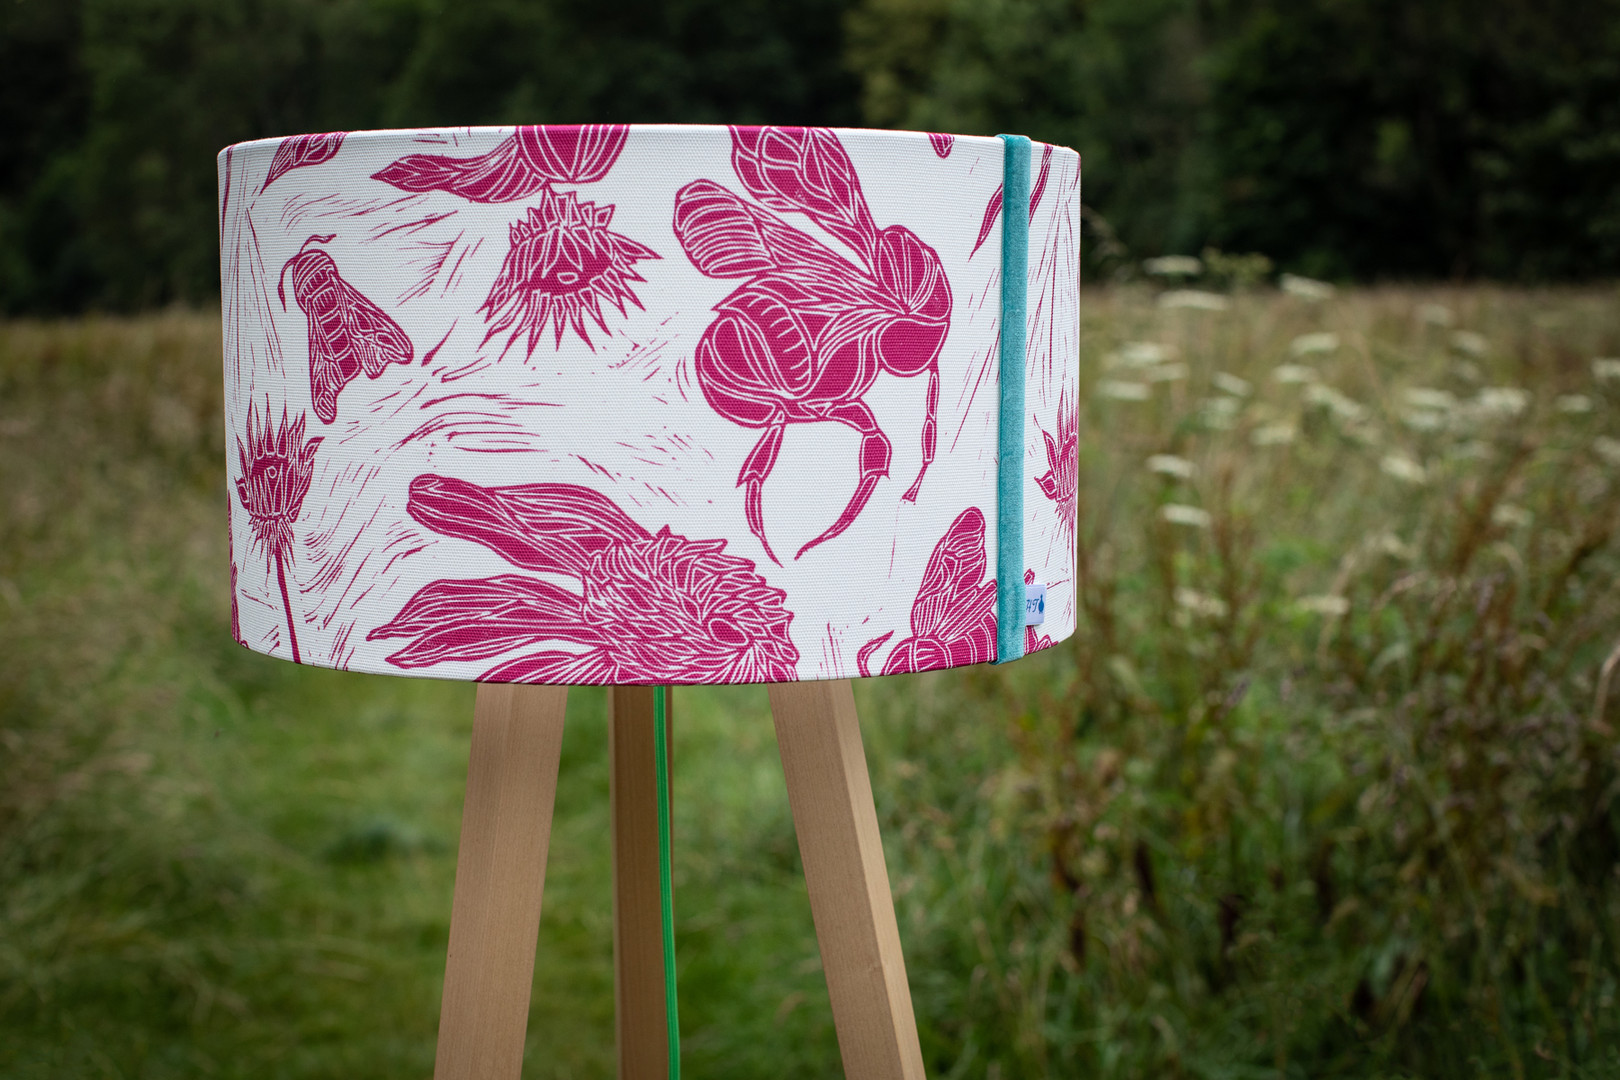 Pollination Lampshade in Glowing Pink